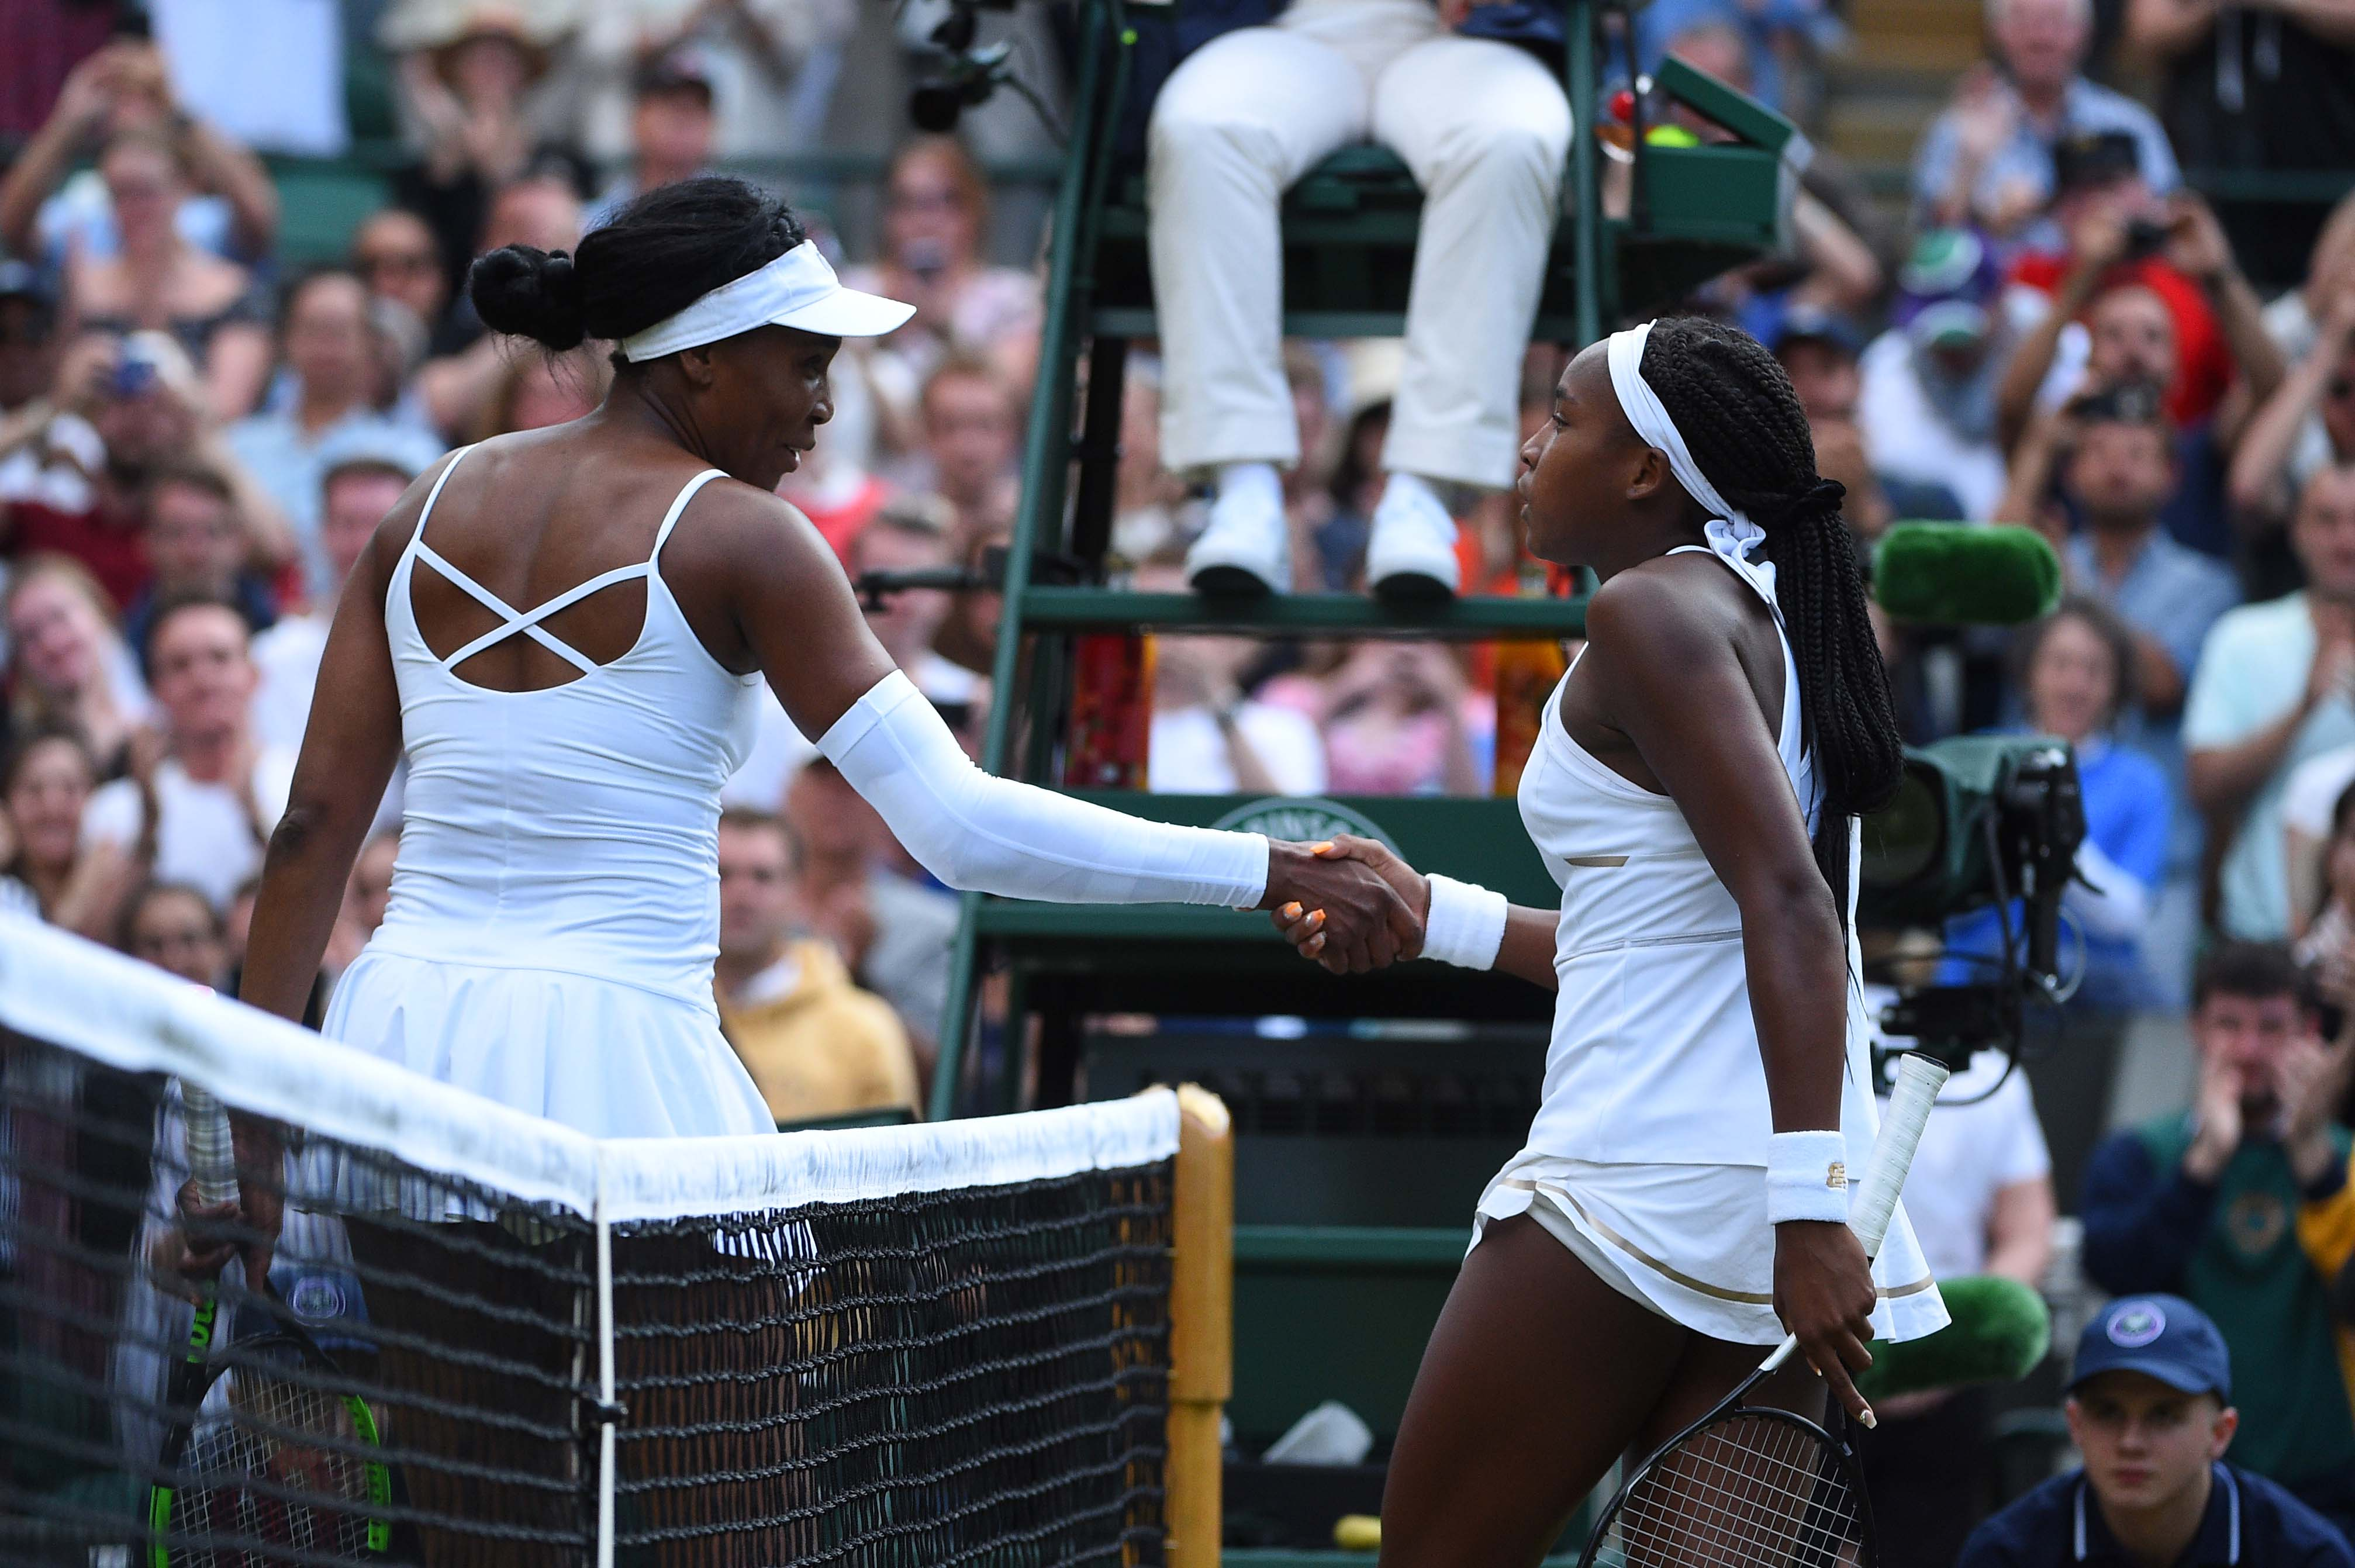 Handshake between Venus Williams and Cori Gauff at Wimbledon 2019